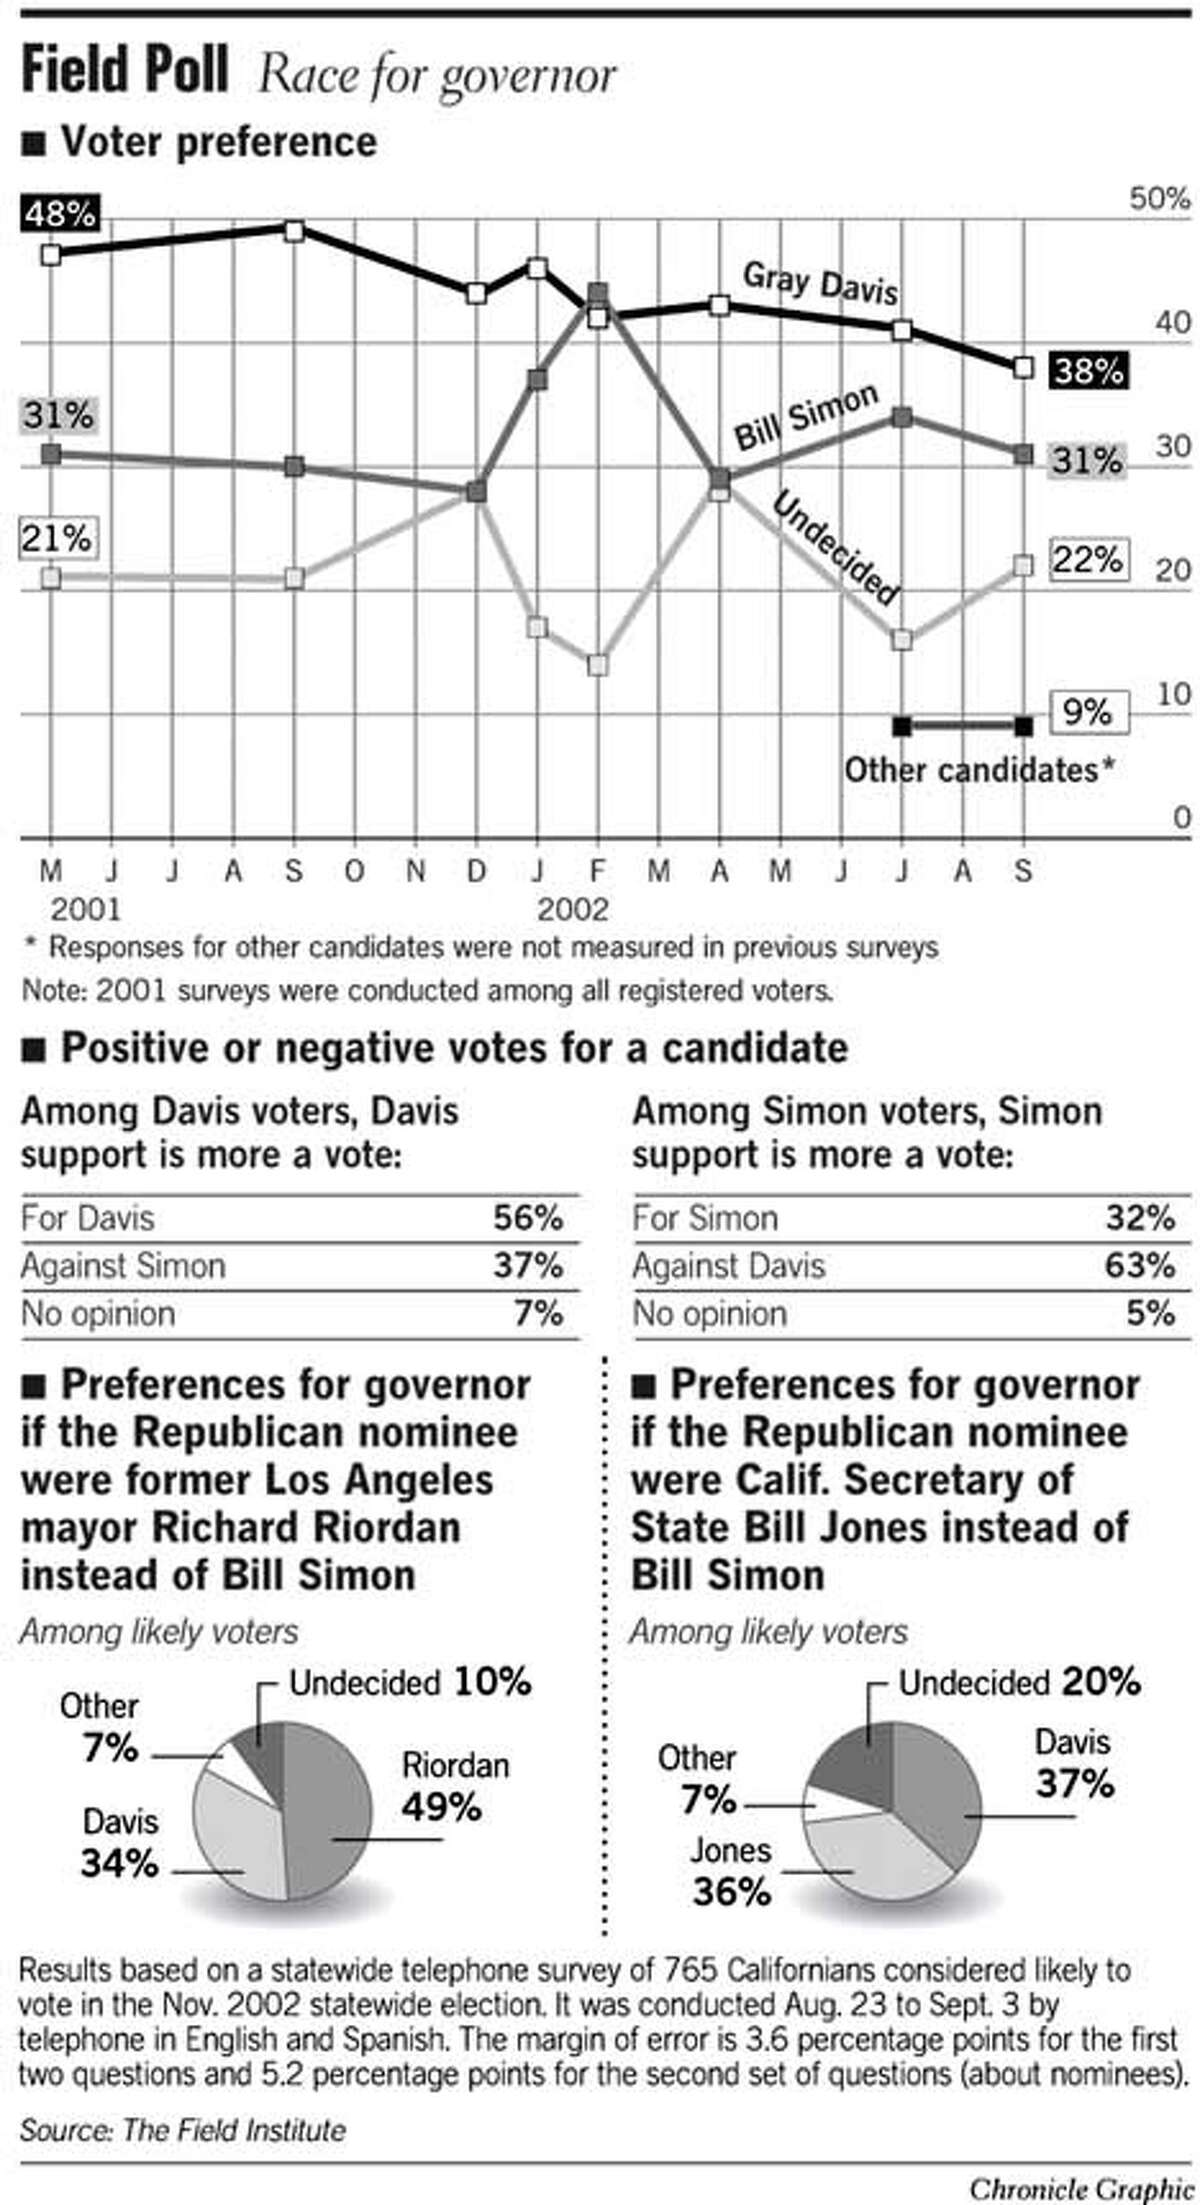 Field Poll: Race for Governor. Chronicle Graphic